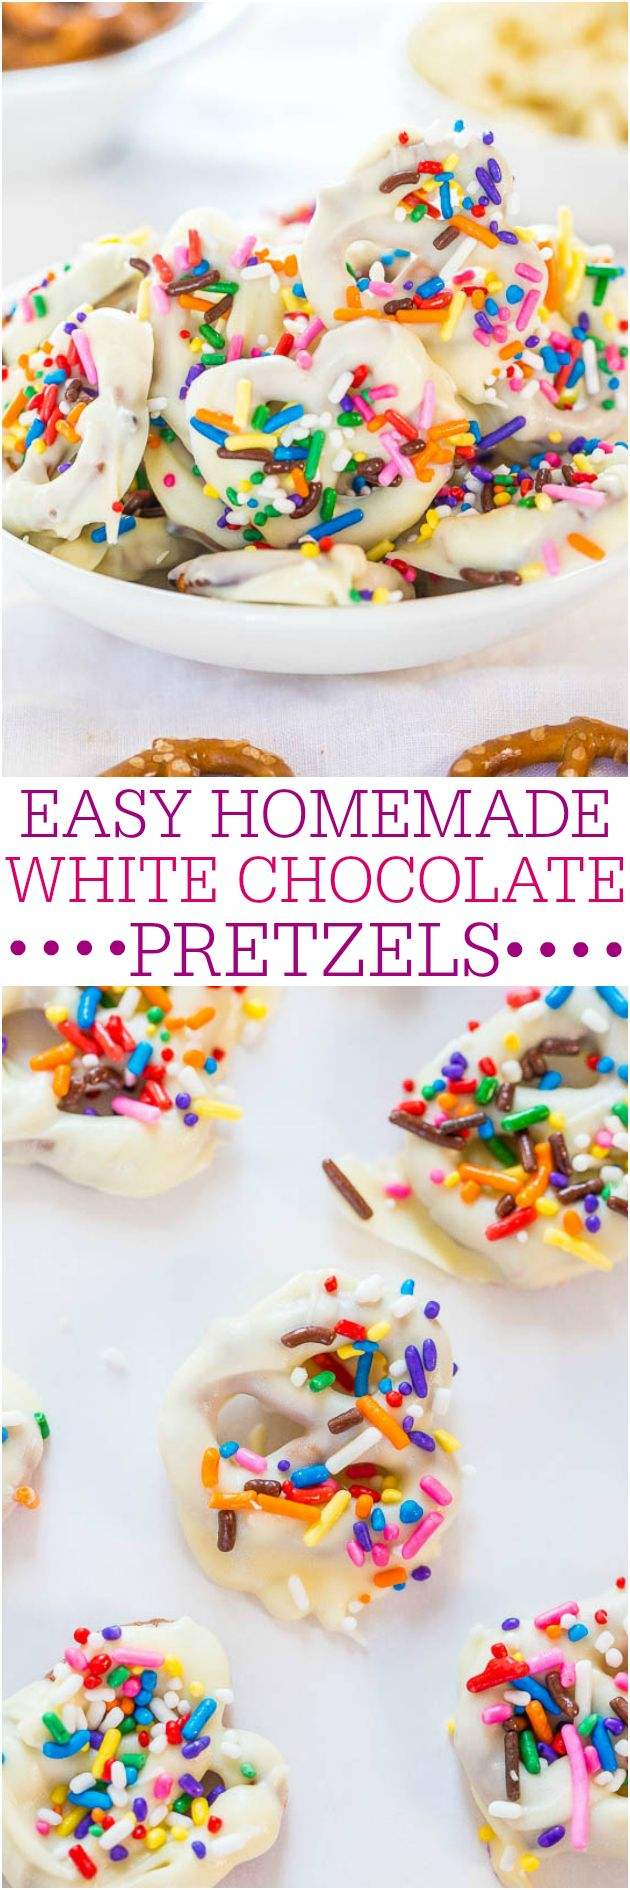 Easy Homemade White Chocolate Pretzels - Crunchy, salty-and-sweet, and so easy! The perfect snack and way better than storebought!